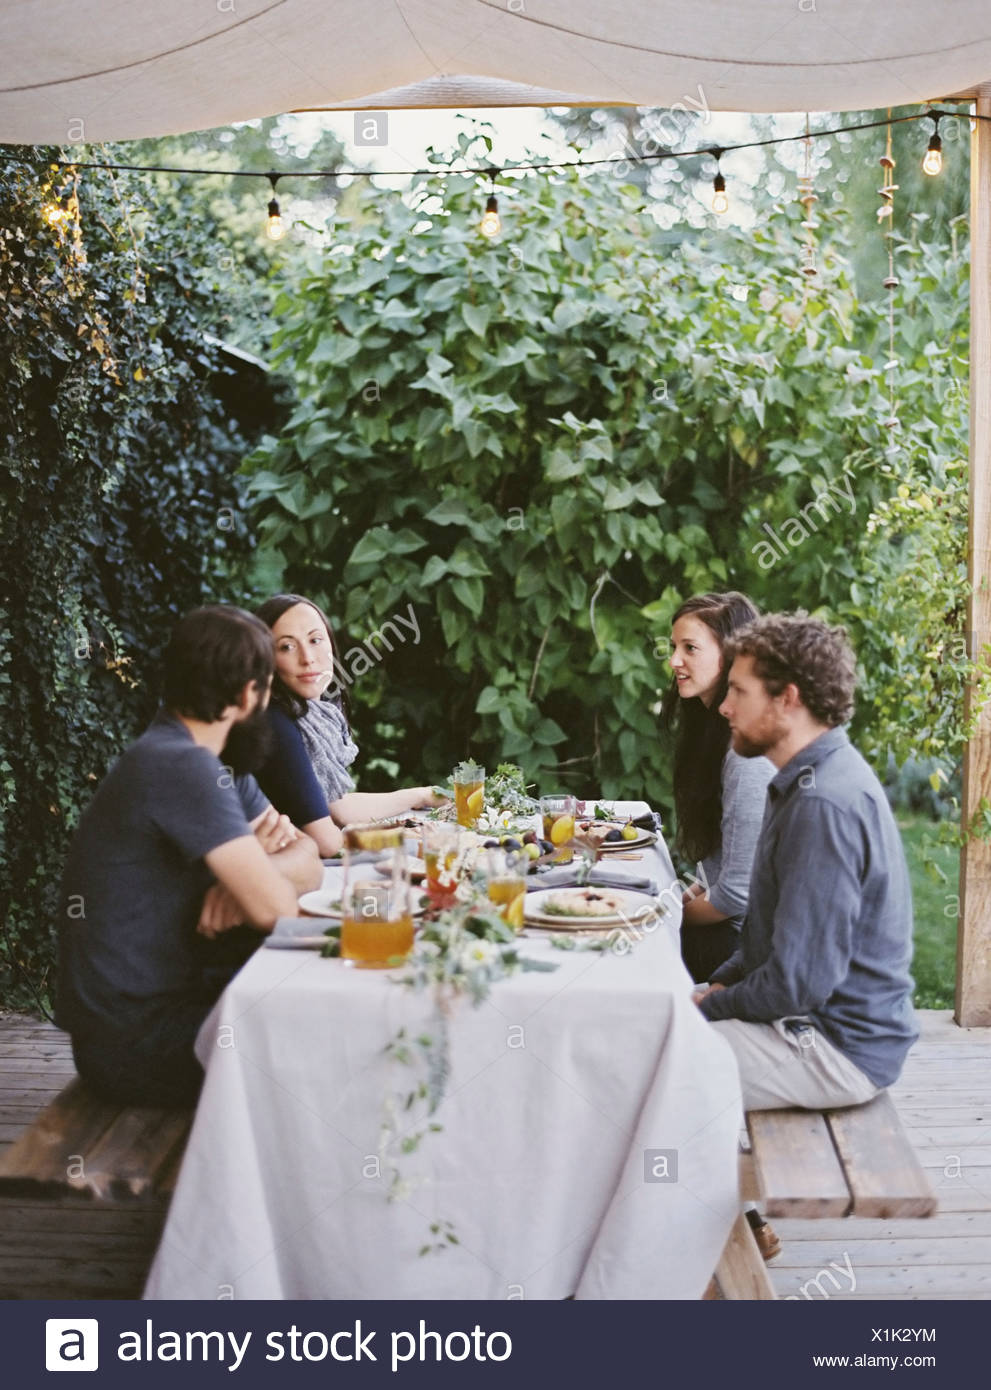 Four people seated at a table in the garden Place settings and decorations on a white tablecloth Two men and two women - Stock Image